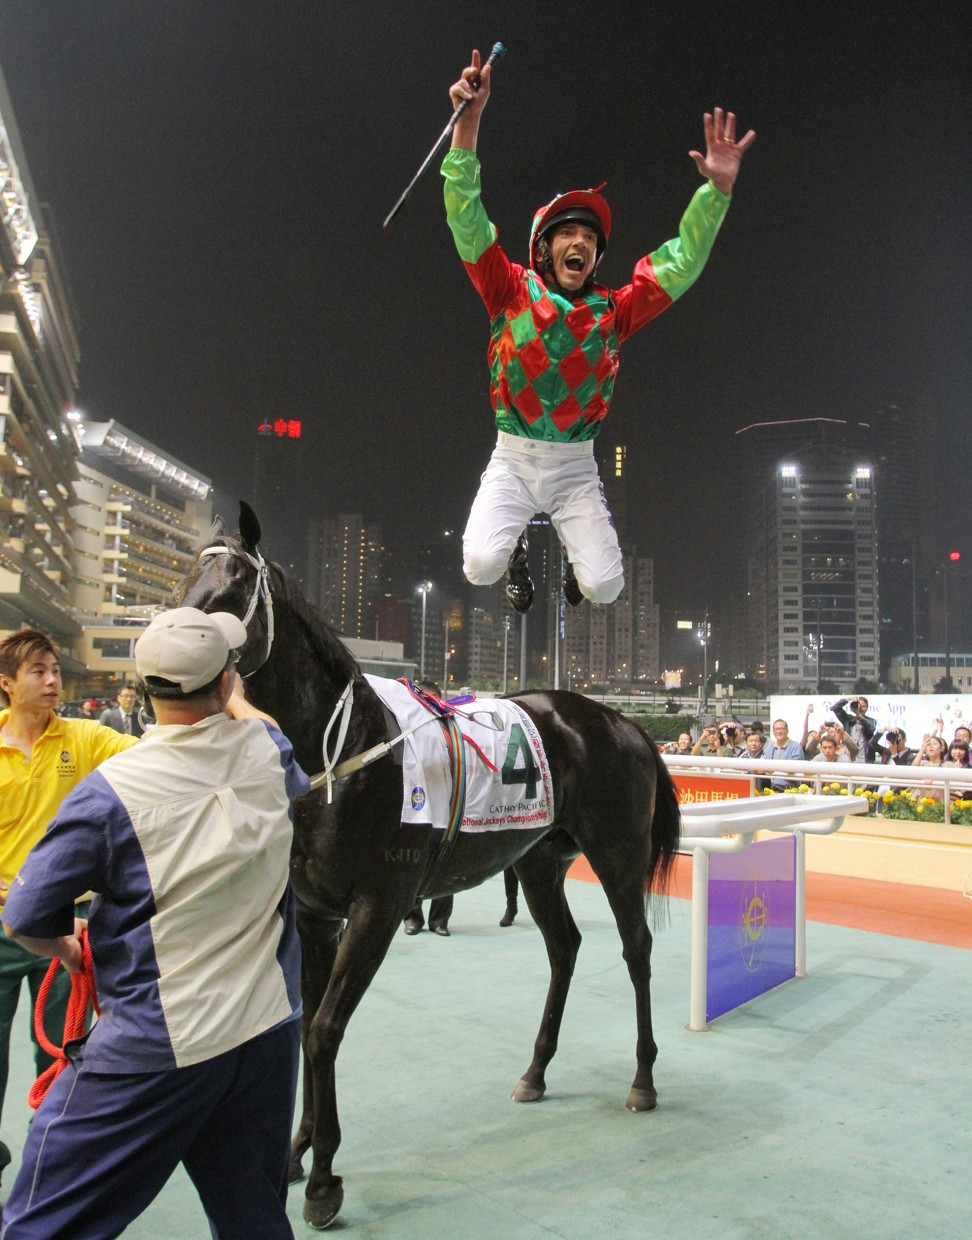 Frankie Dettori jumps in the air after winning a race at Happy Valley in 2011.